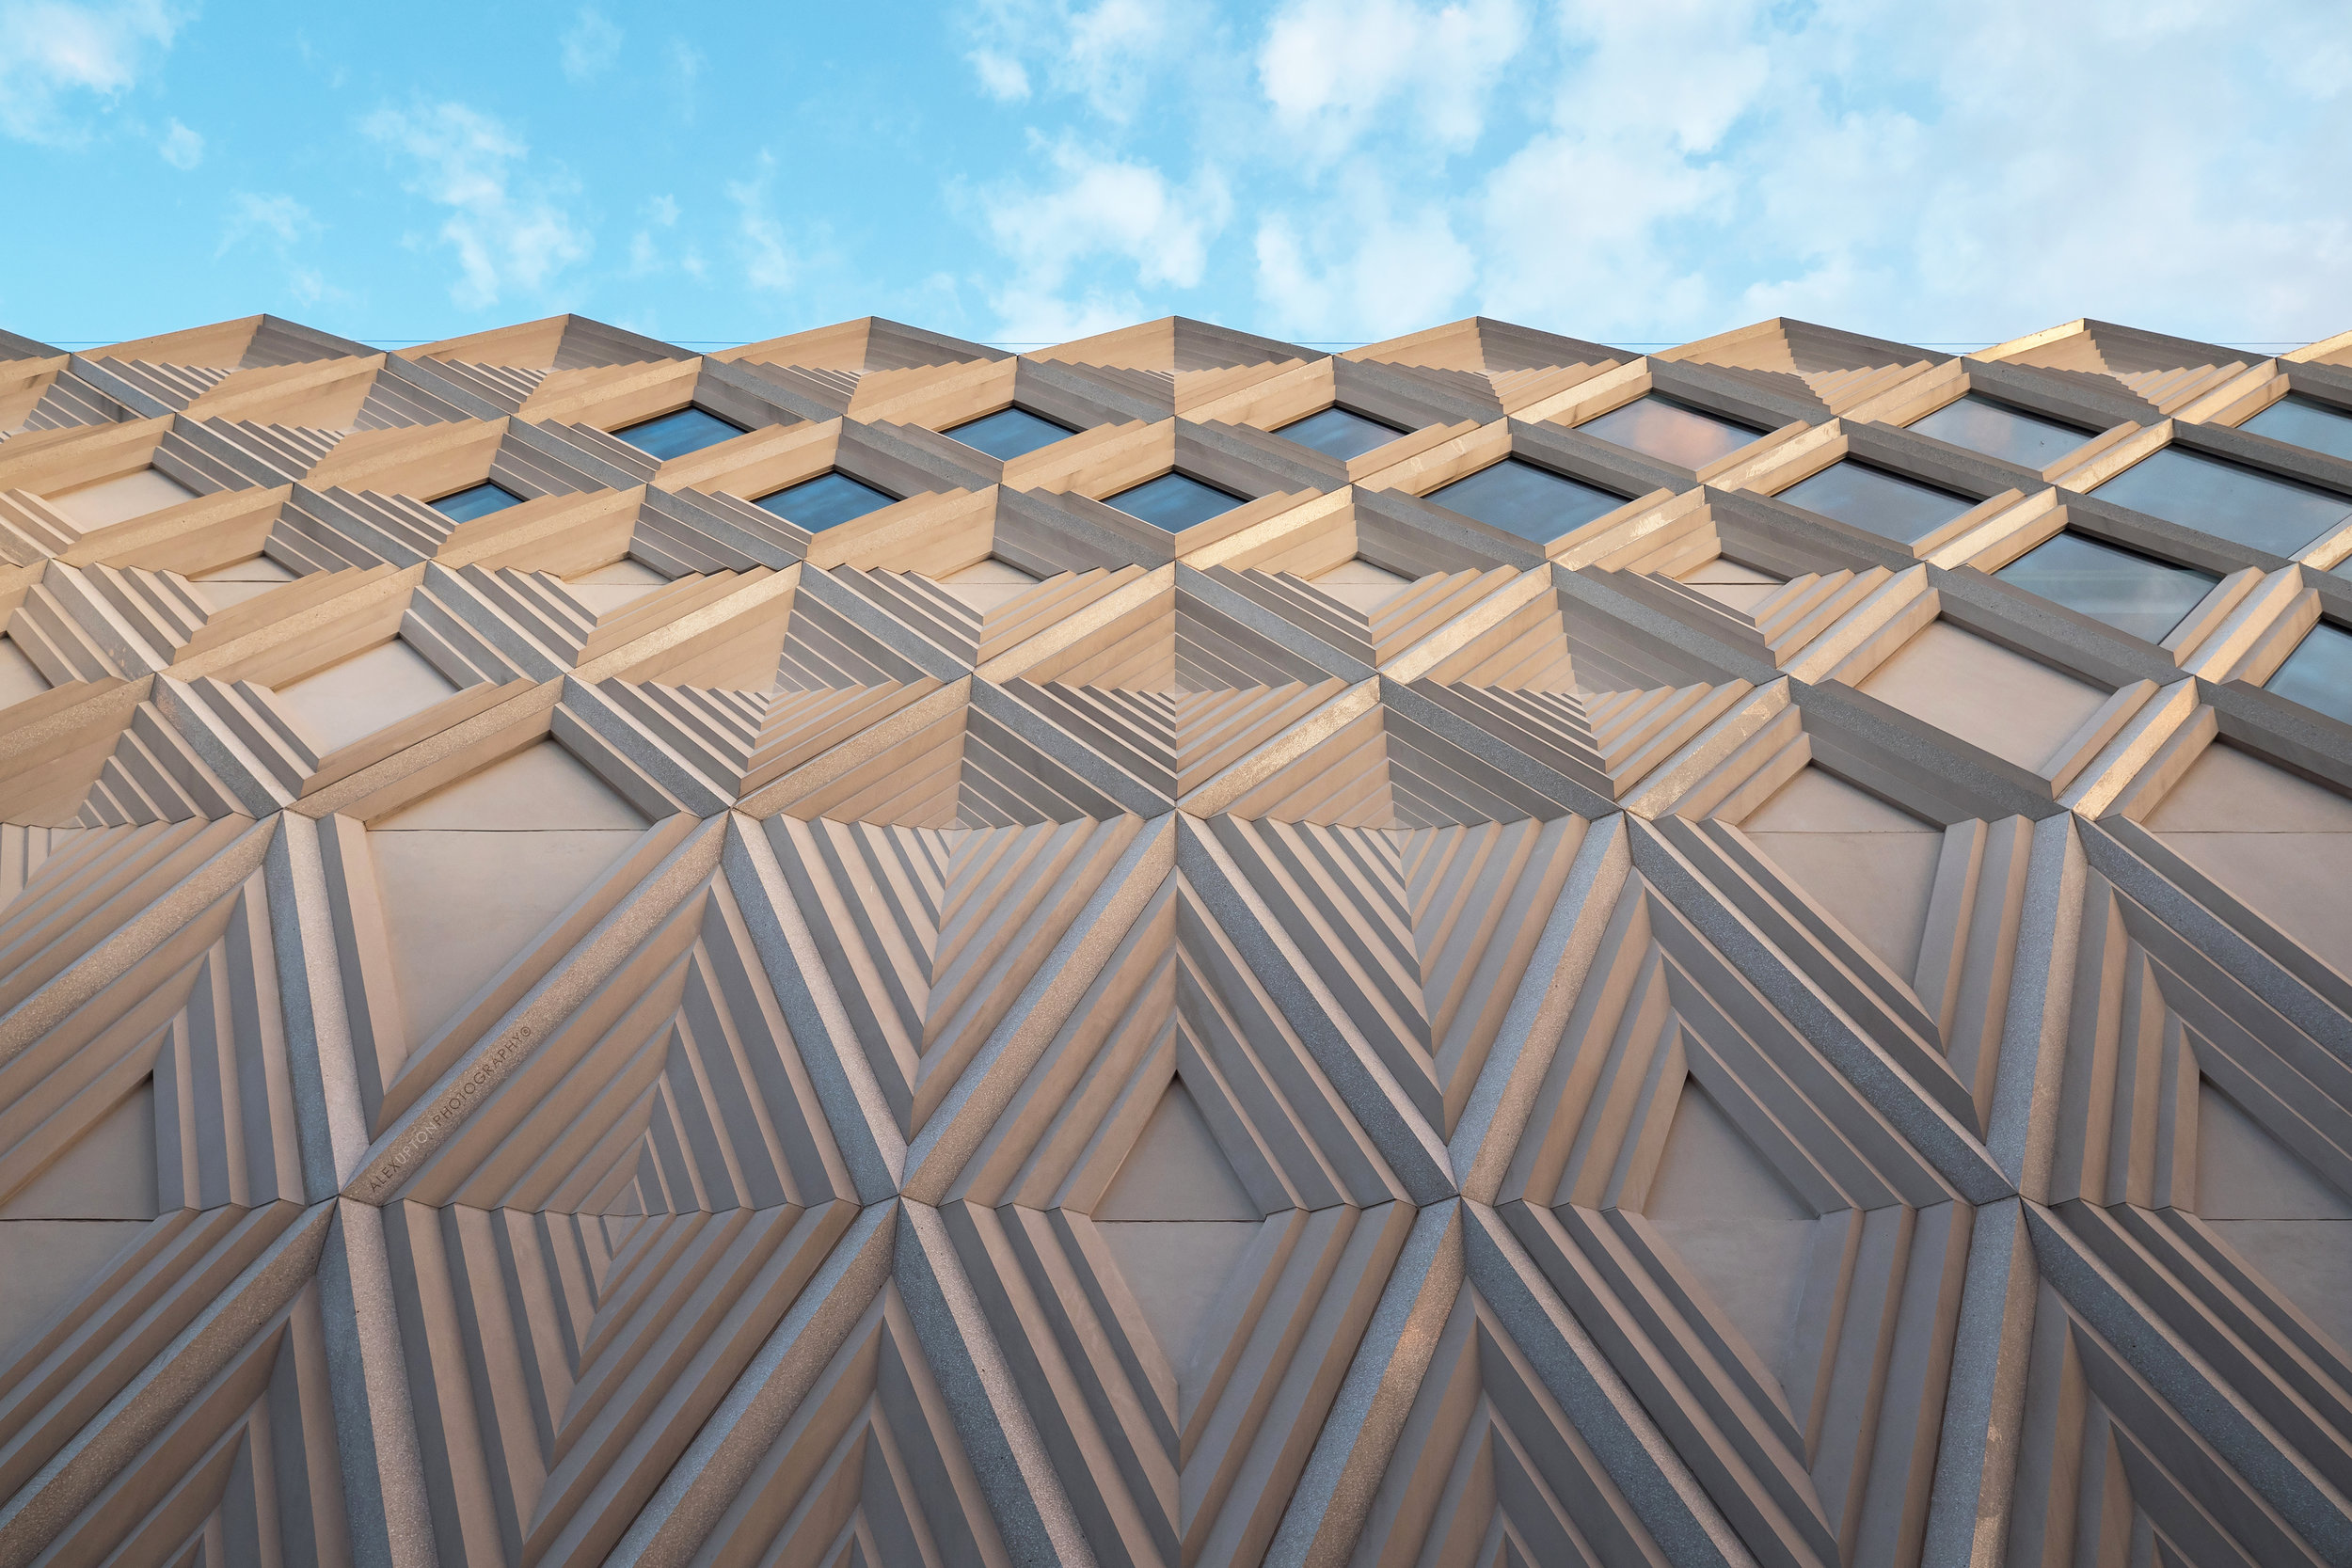 Victoria Gate John Lewis Diamond Latticed Facade.Photography: Copyright © Alex Upton